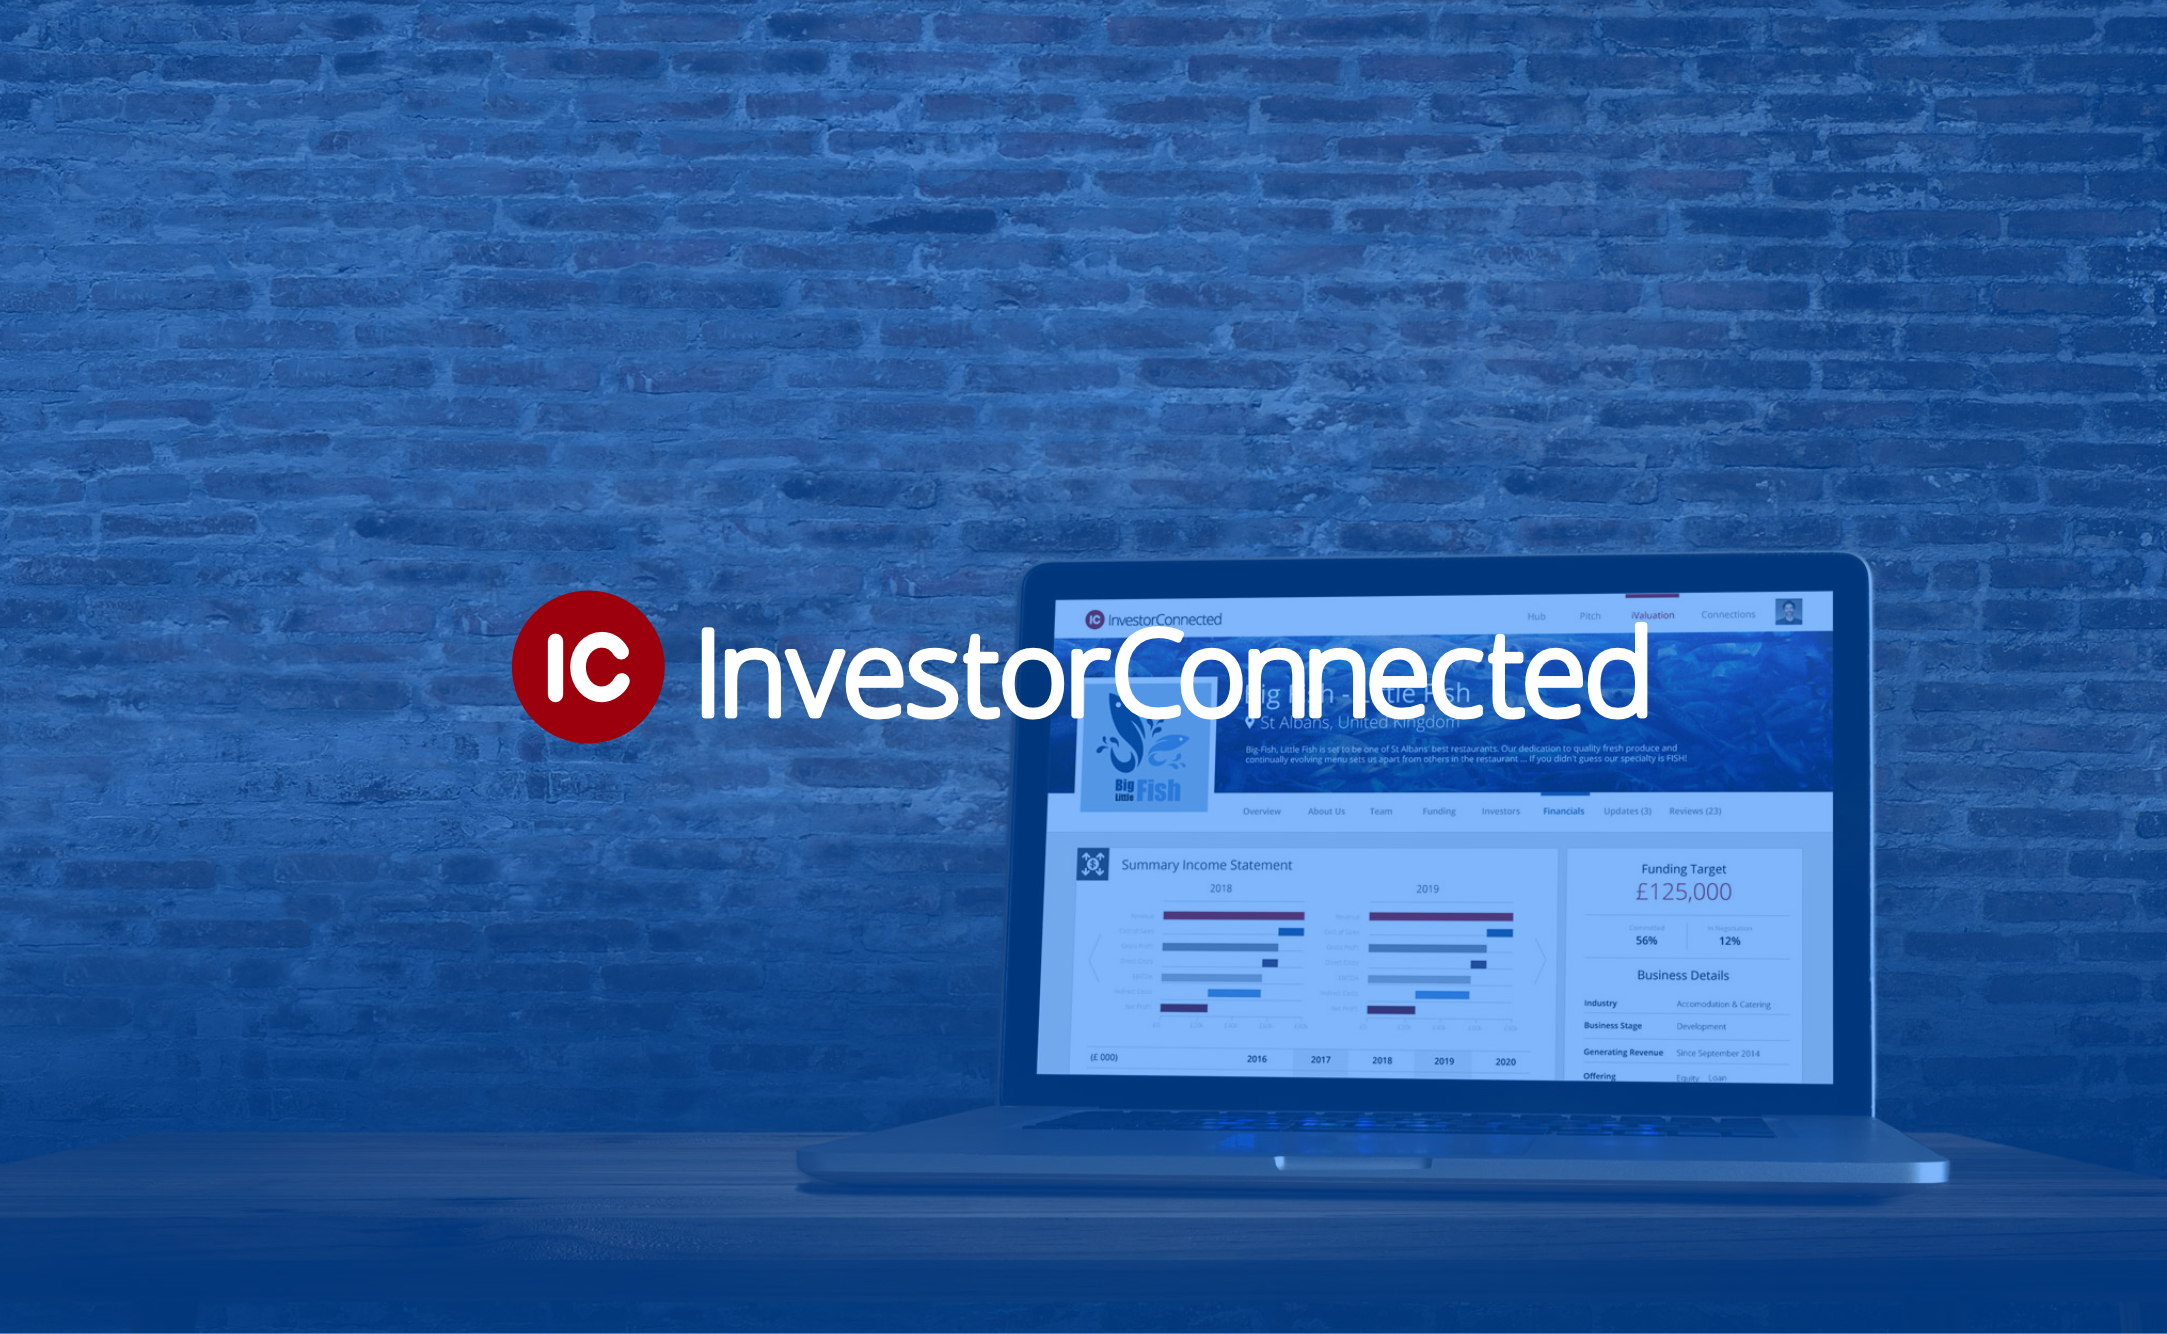 Investor Connected